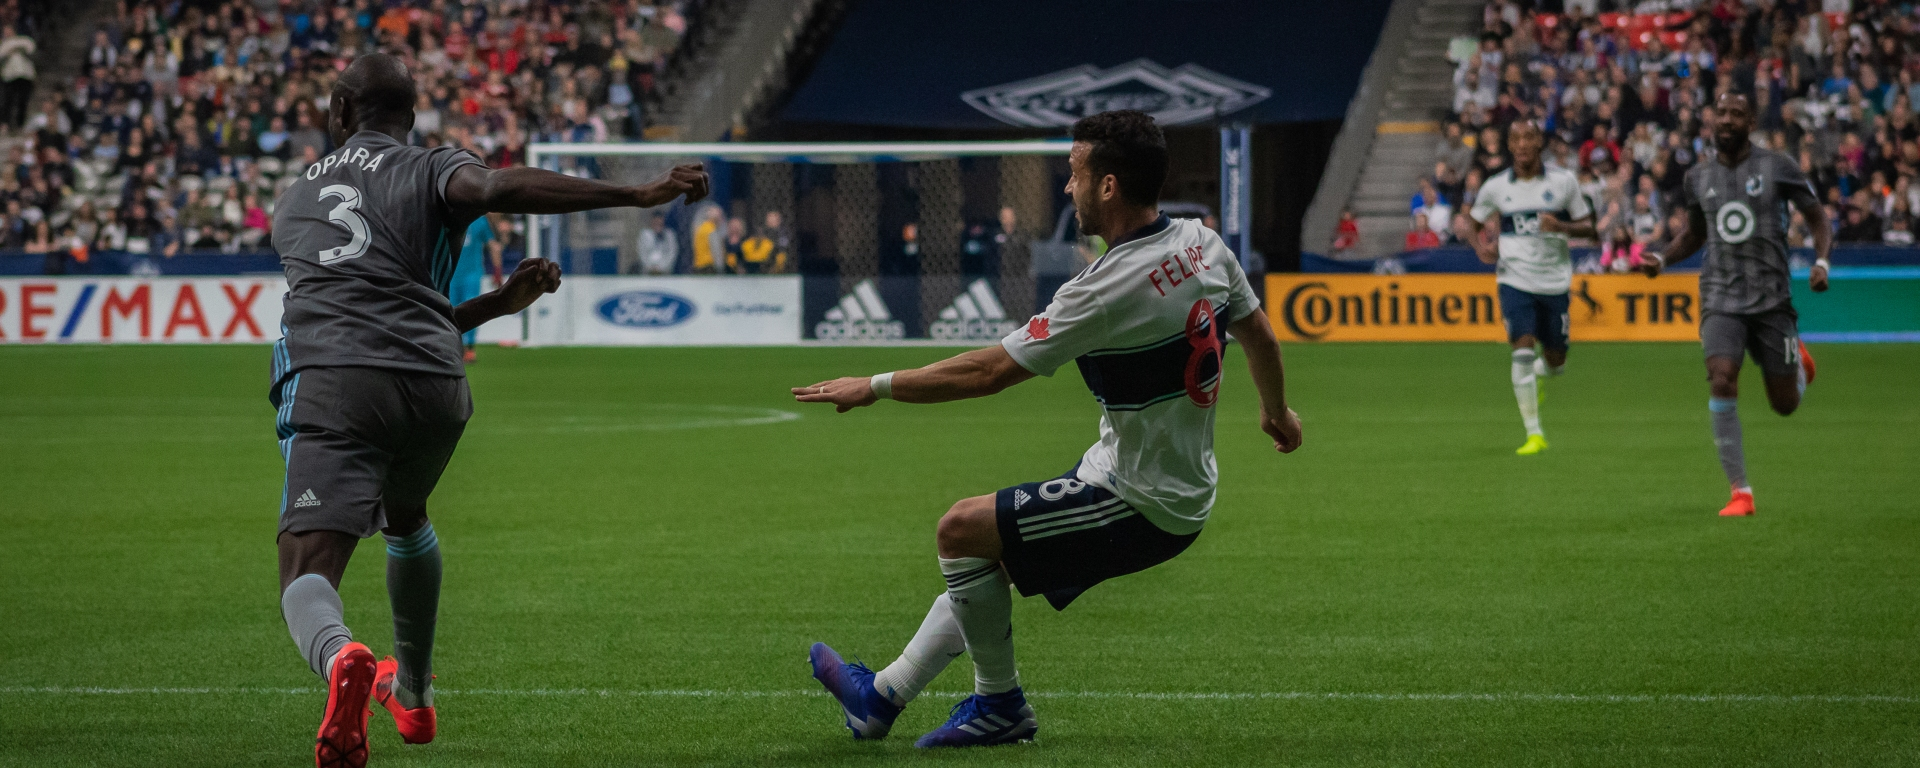 Post-Match Review #24– Vancouver Whitecaps FC vs Minnesota